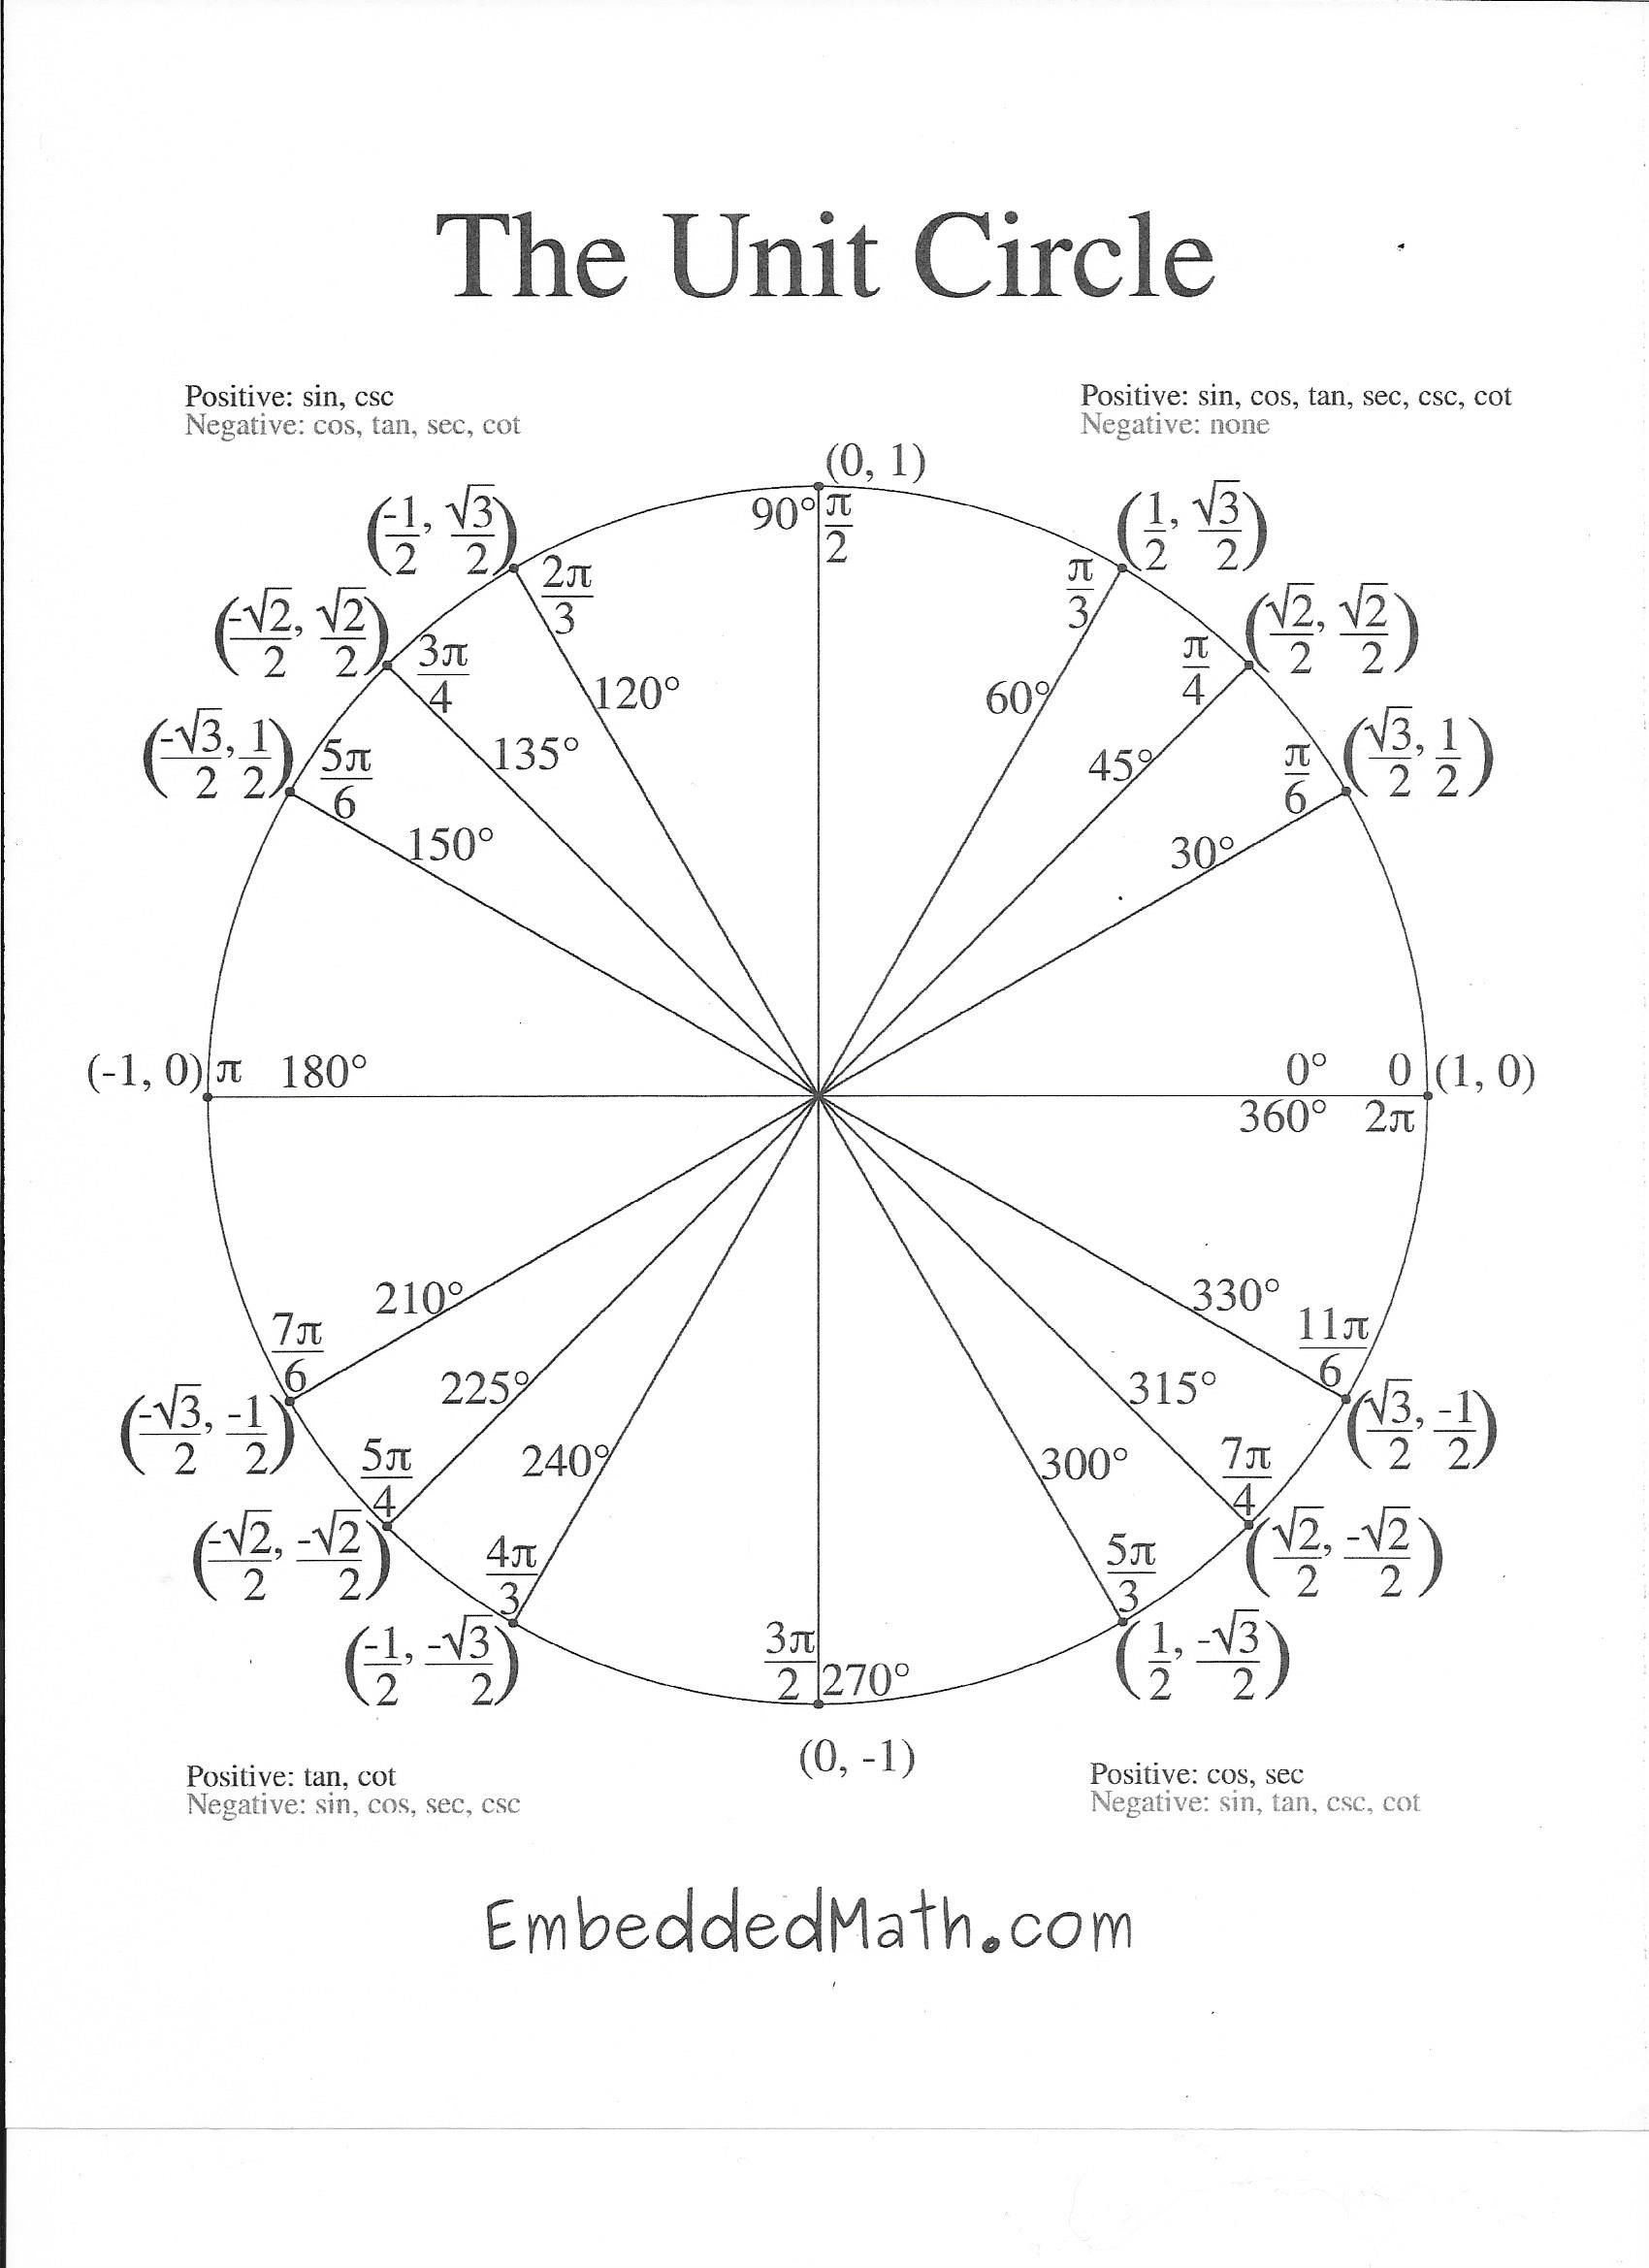 Pin By Olivia Wright On This Might Help Me In School Or College Free Printable Math Worksheets Printable Math Worksheets Math Worksheets